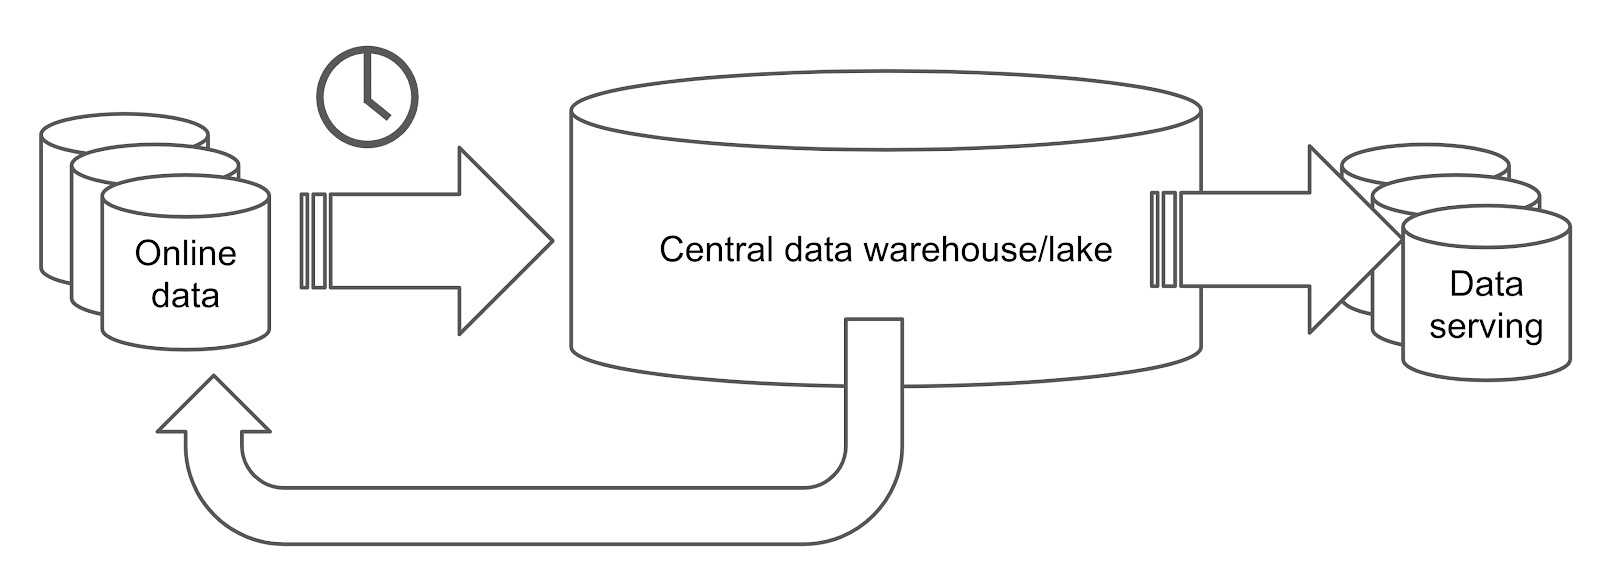 A traditional data platform with OLTP and OLAP